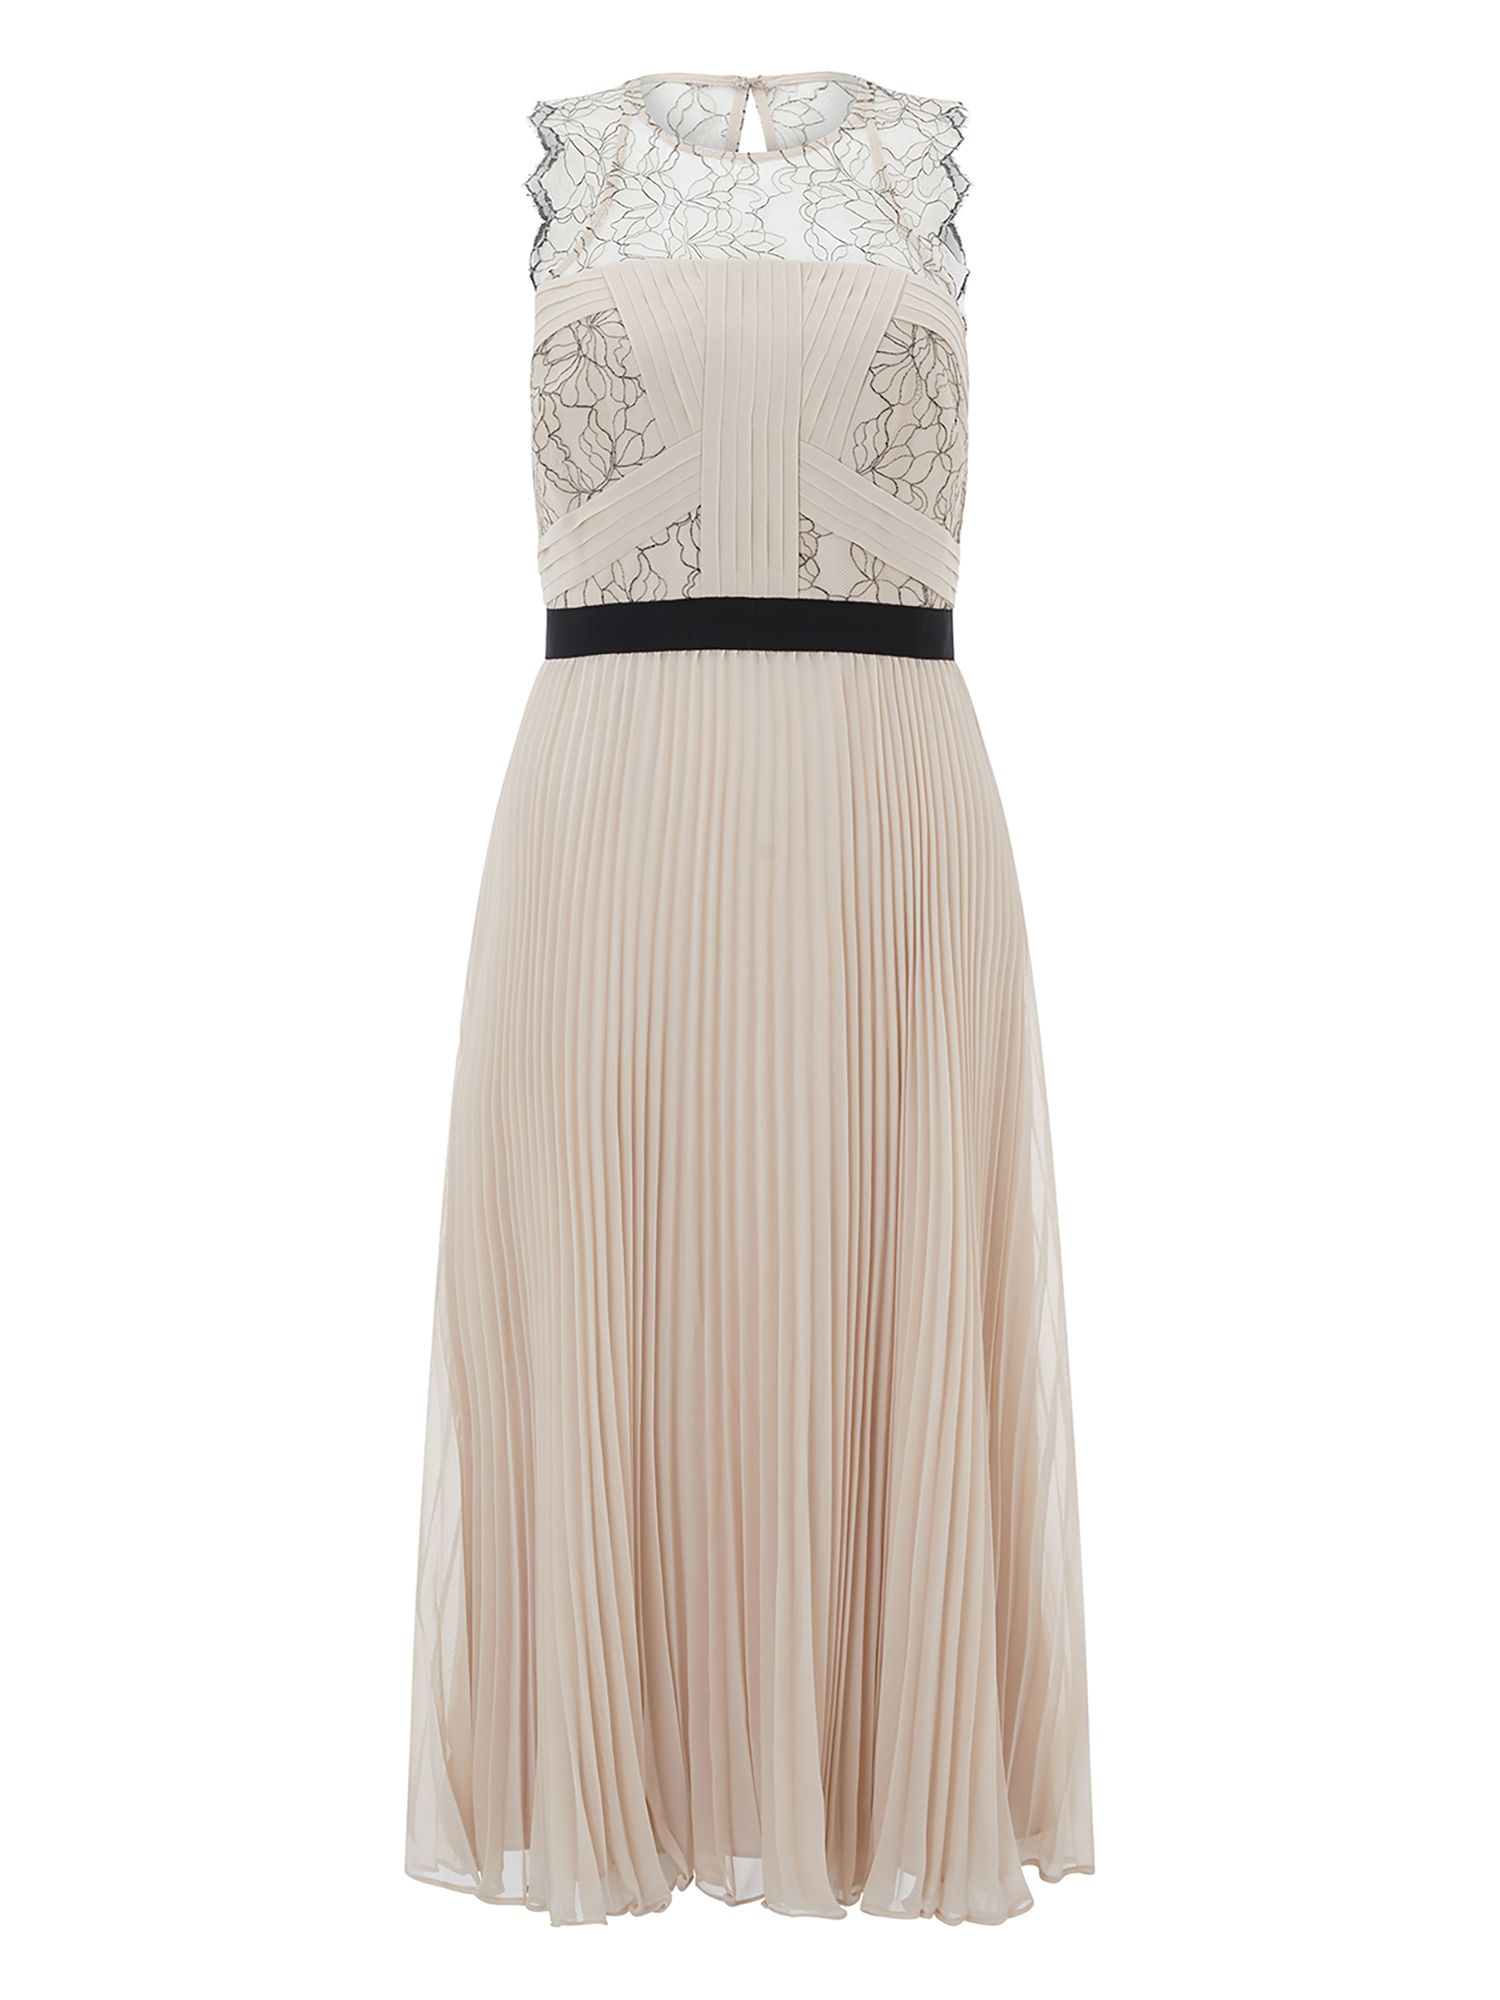 Monsoon Sharma Lace Midi Dress, Nude